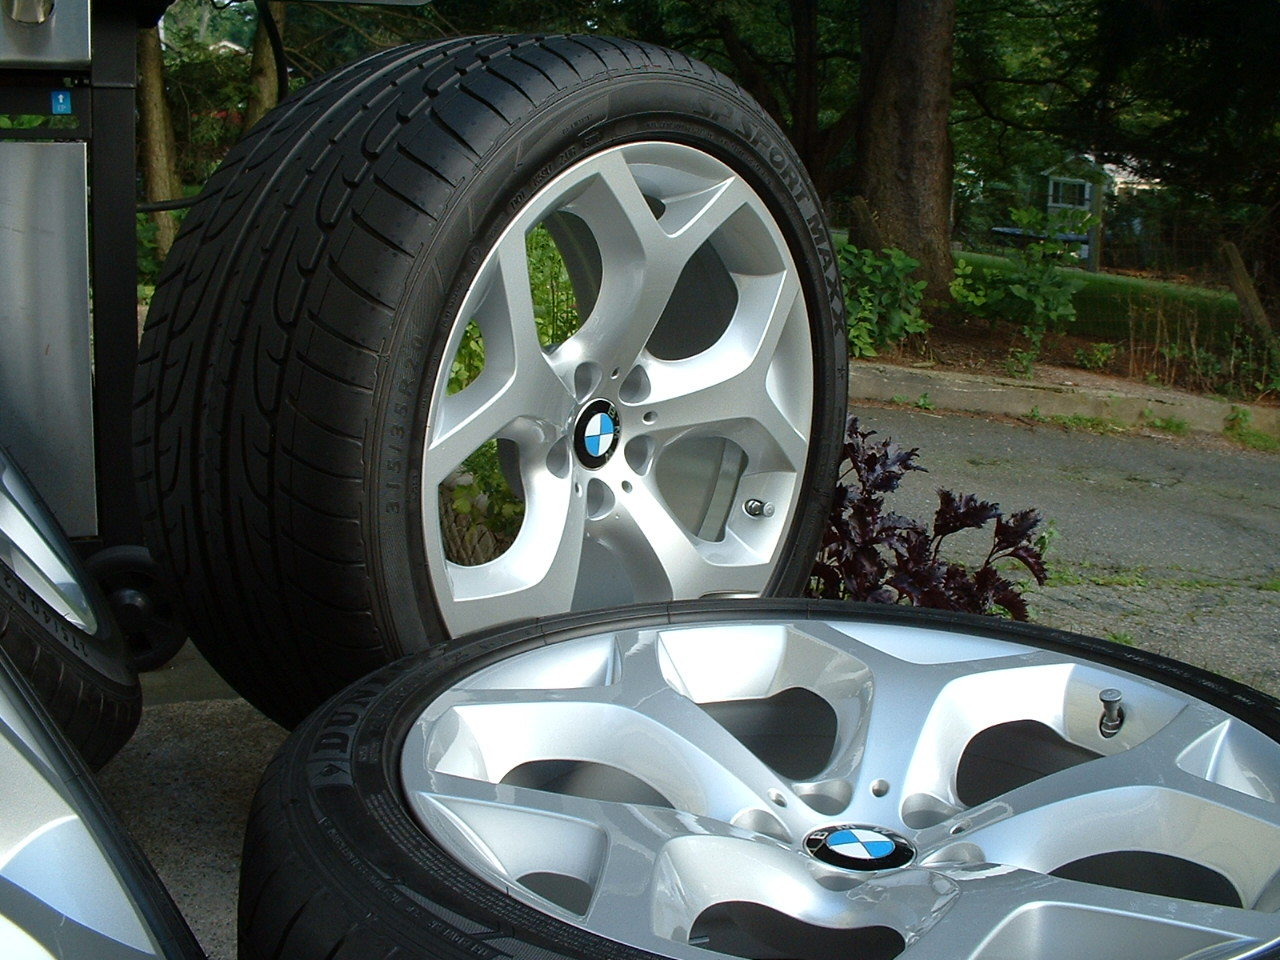 2009 20 Quot Bmw X5 Style 214 Y Spoke Wheels Tires Tpms New